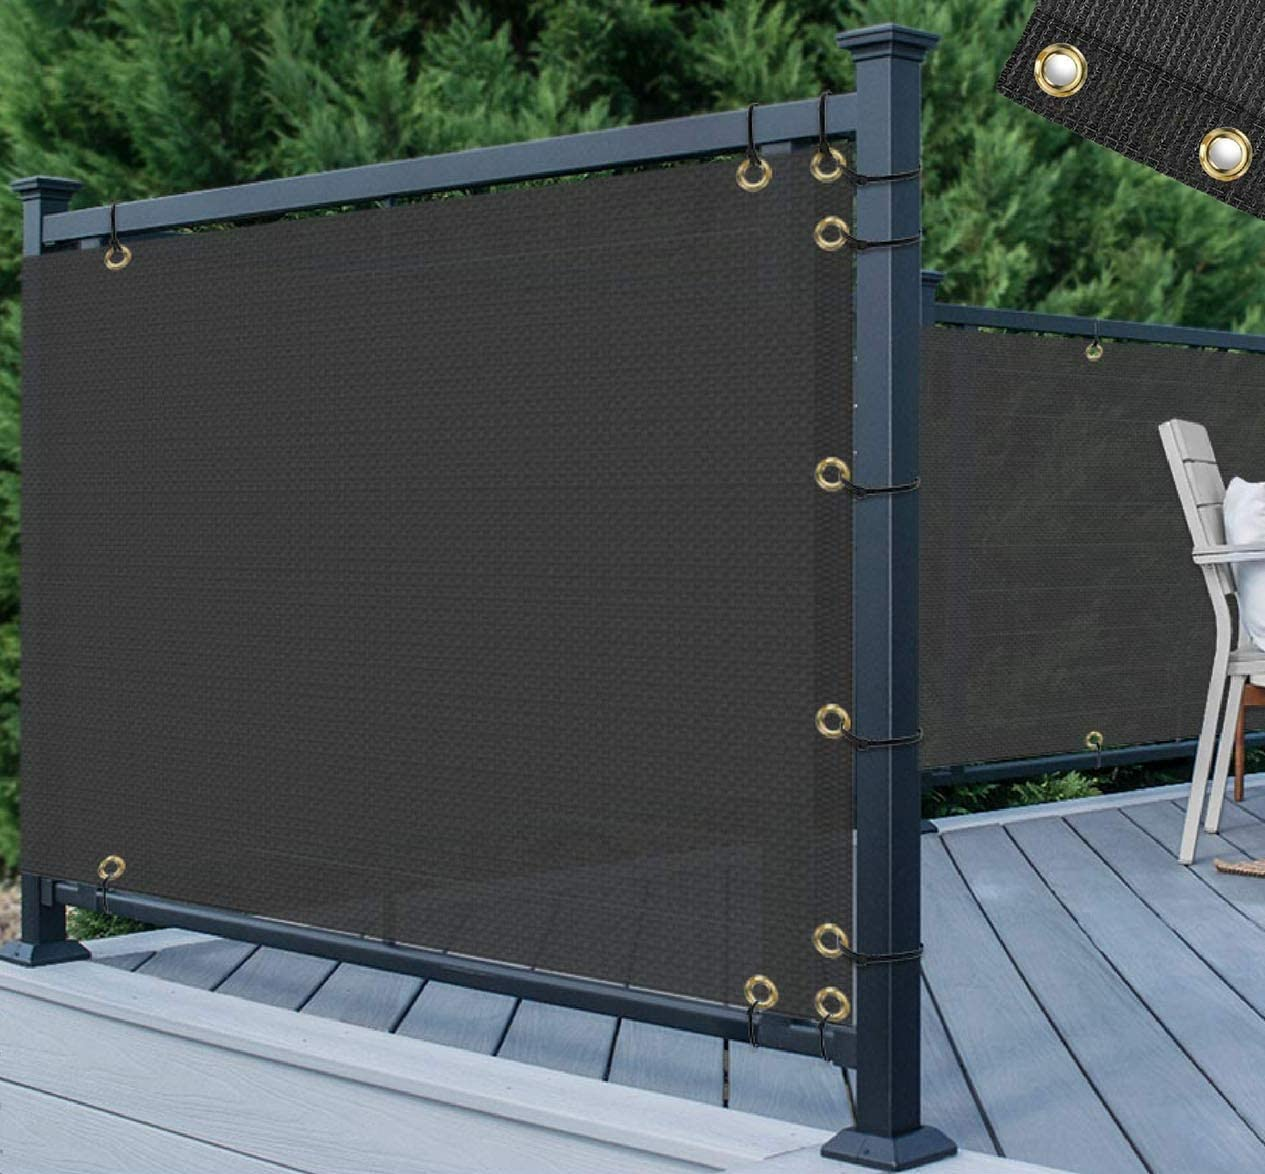 TANG 3' x 15' Black Residential Commercial Privacy Deck Fence Screen 200 GSM Weather Resistant Outdoor Protection Fencing Net for Balcony Verandah Porch Patio Pool Backyard Rails